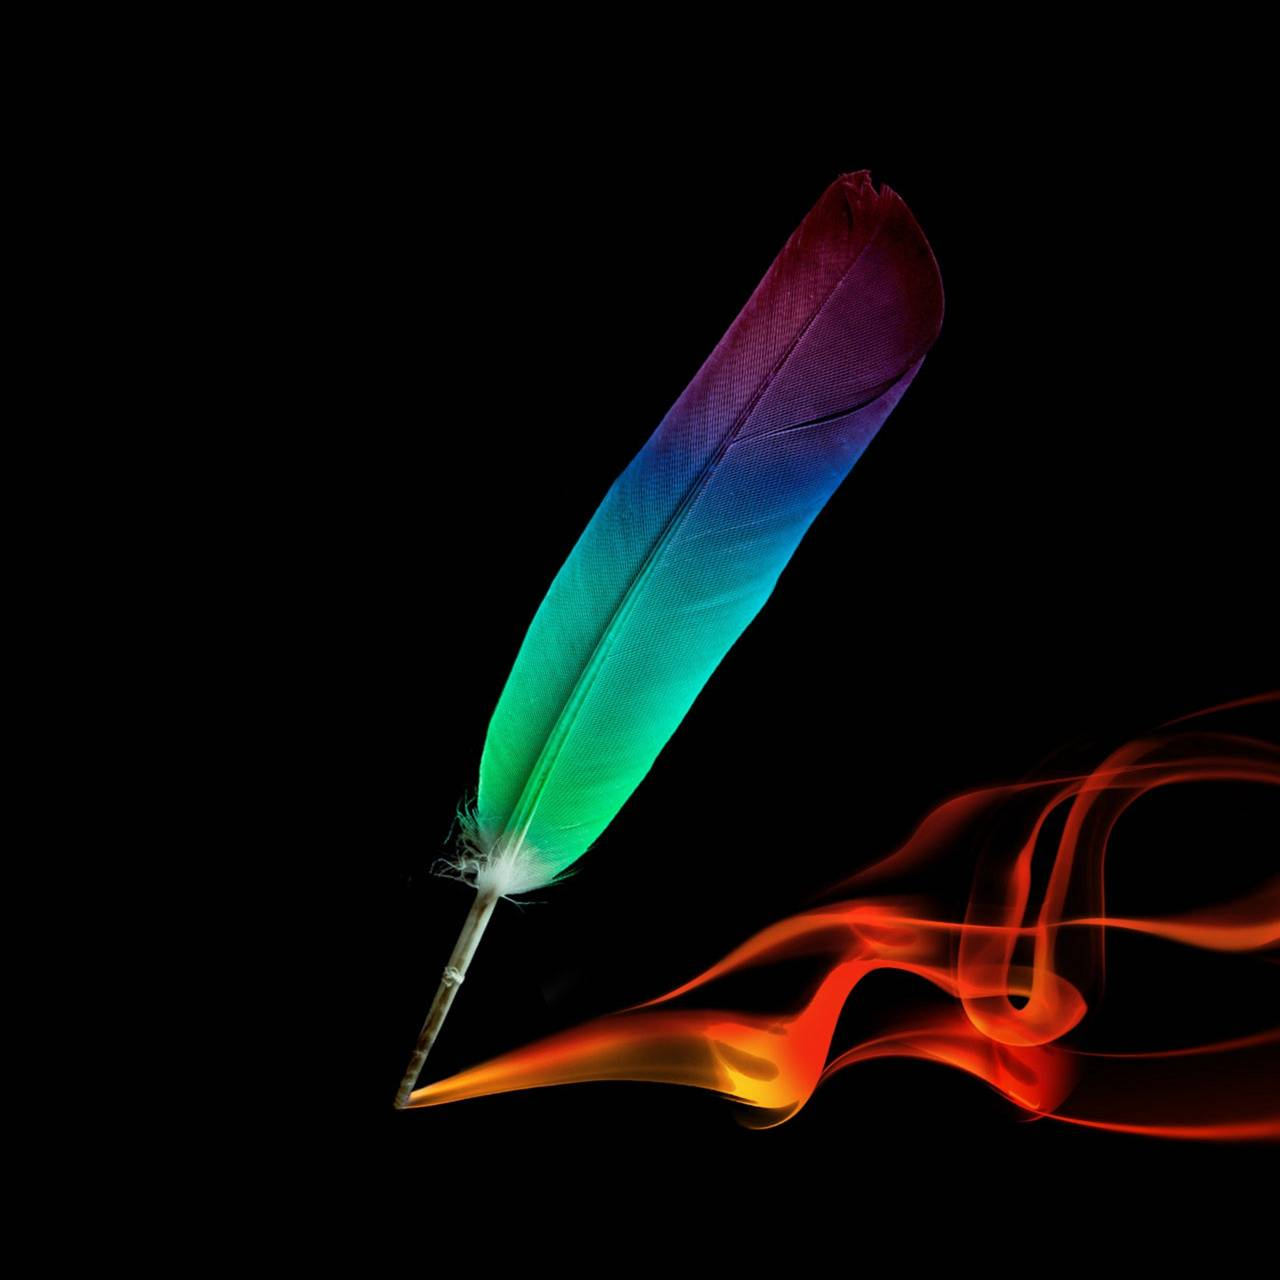 Feather LG